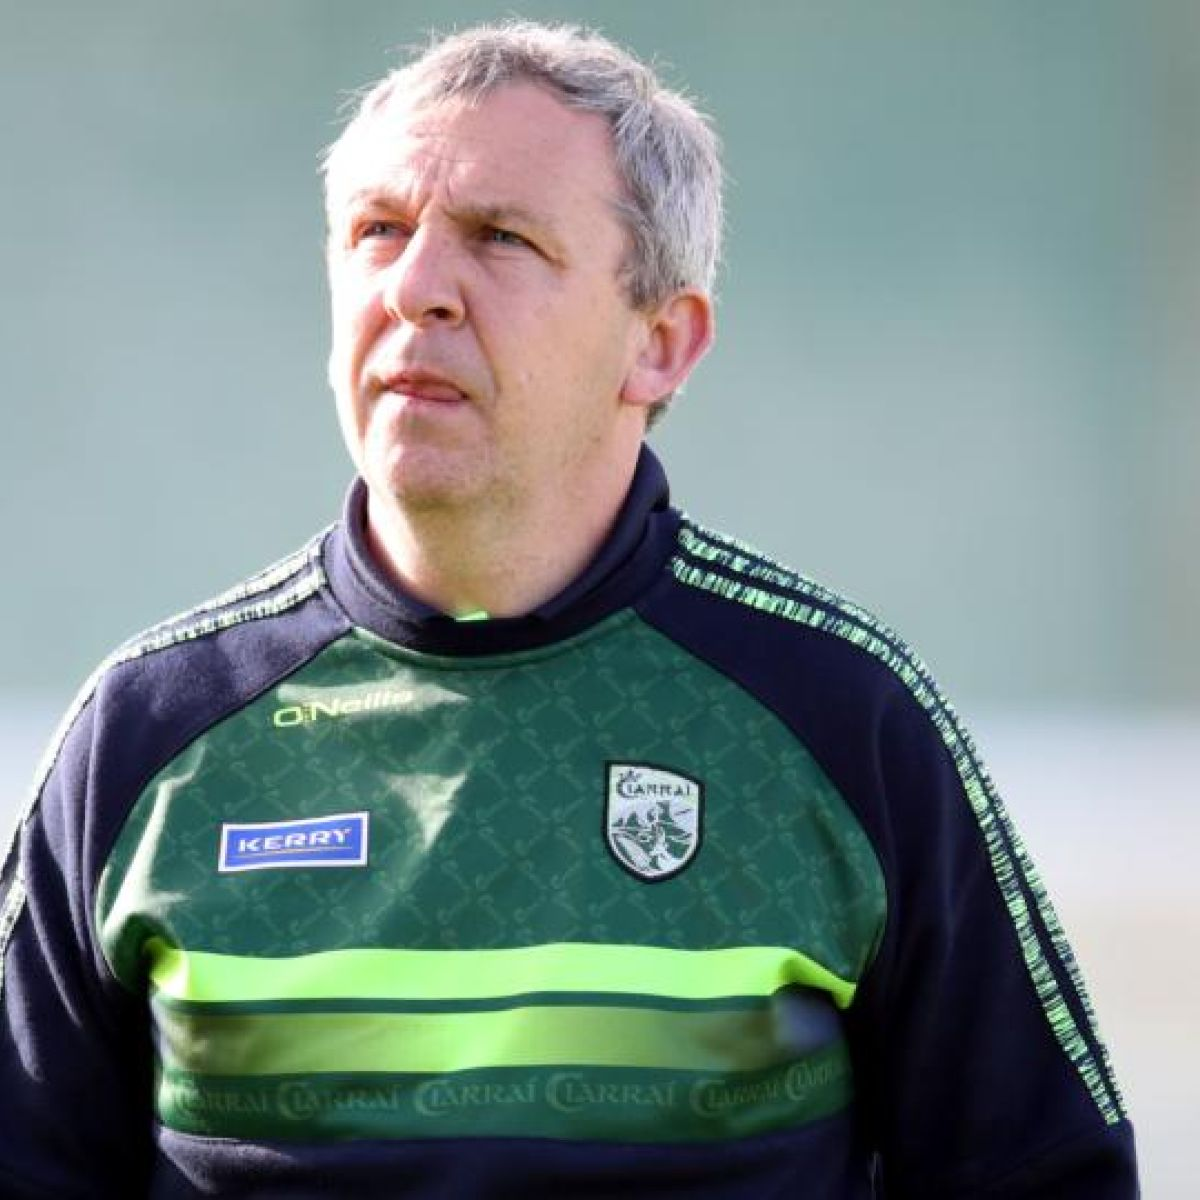 Kerry players feel theyre born for days like this - RTE